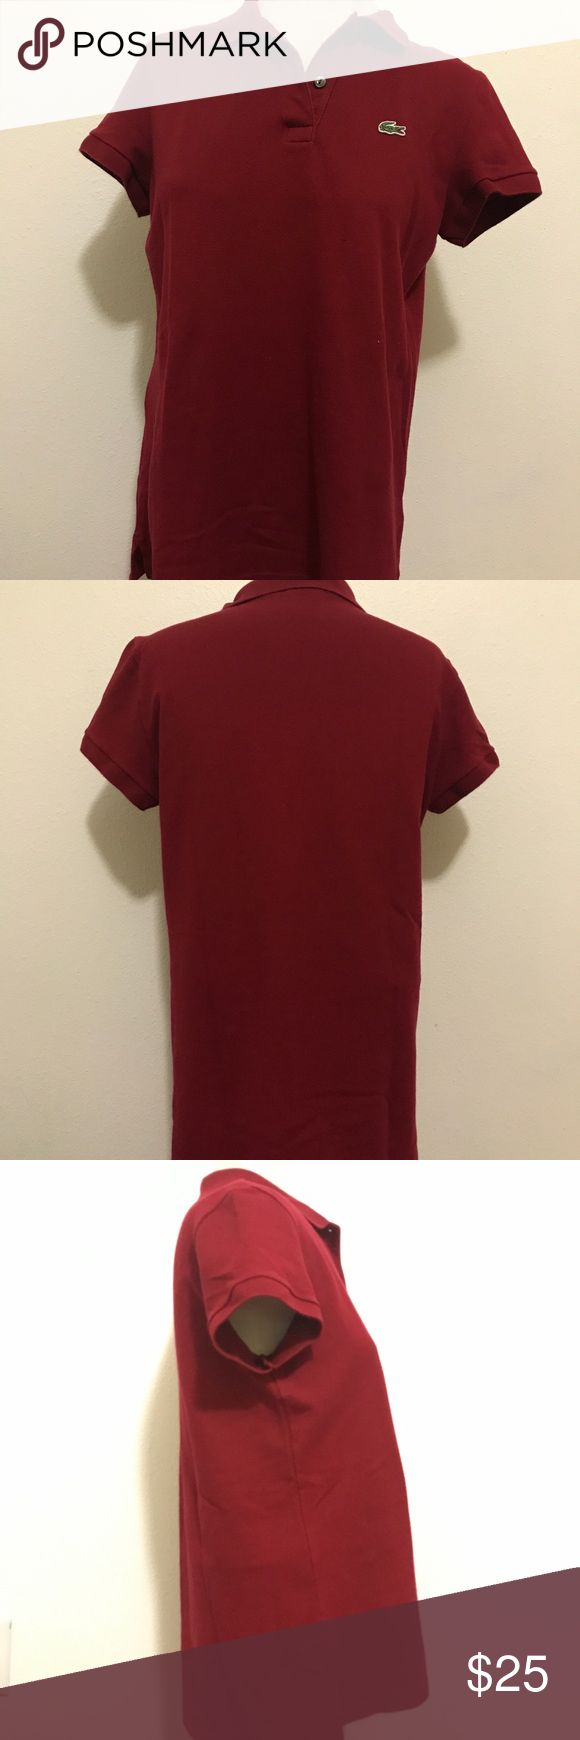 """Lacoste Ladies Polo Shirt Authentic Lacoste Ladies  Polo Shirt. In excellent pre-owned condition. Size 44 but runs Medium. Made in Peru, designed in France. Red in color. Material is 94%Cotton and 6% Elastane. Measures 25"""" long from shoulders down. 19"""" on chest area. Lacoste Tops Tees - Short Sleeve"""